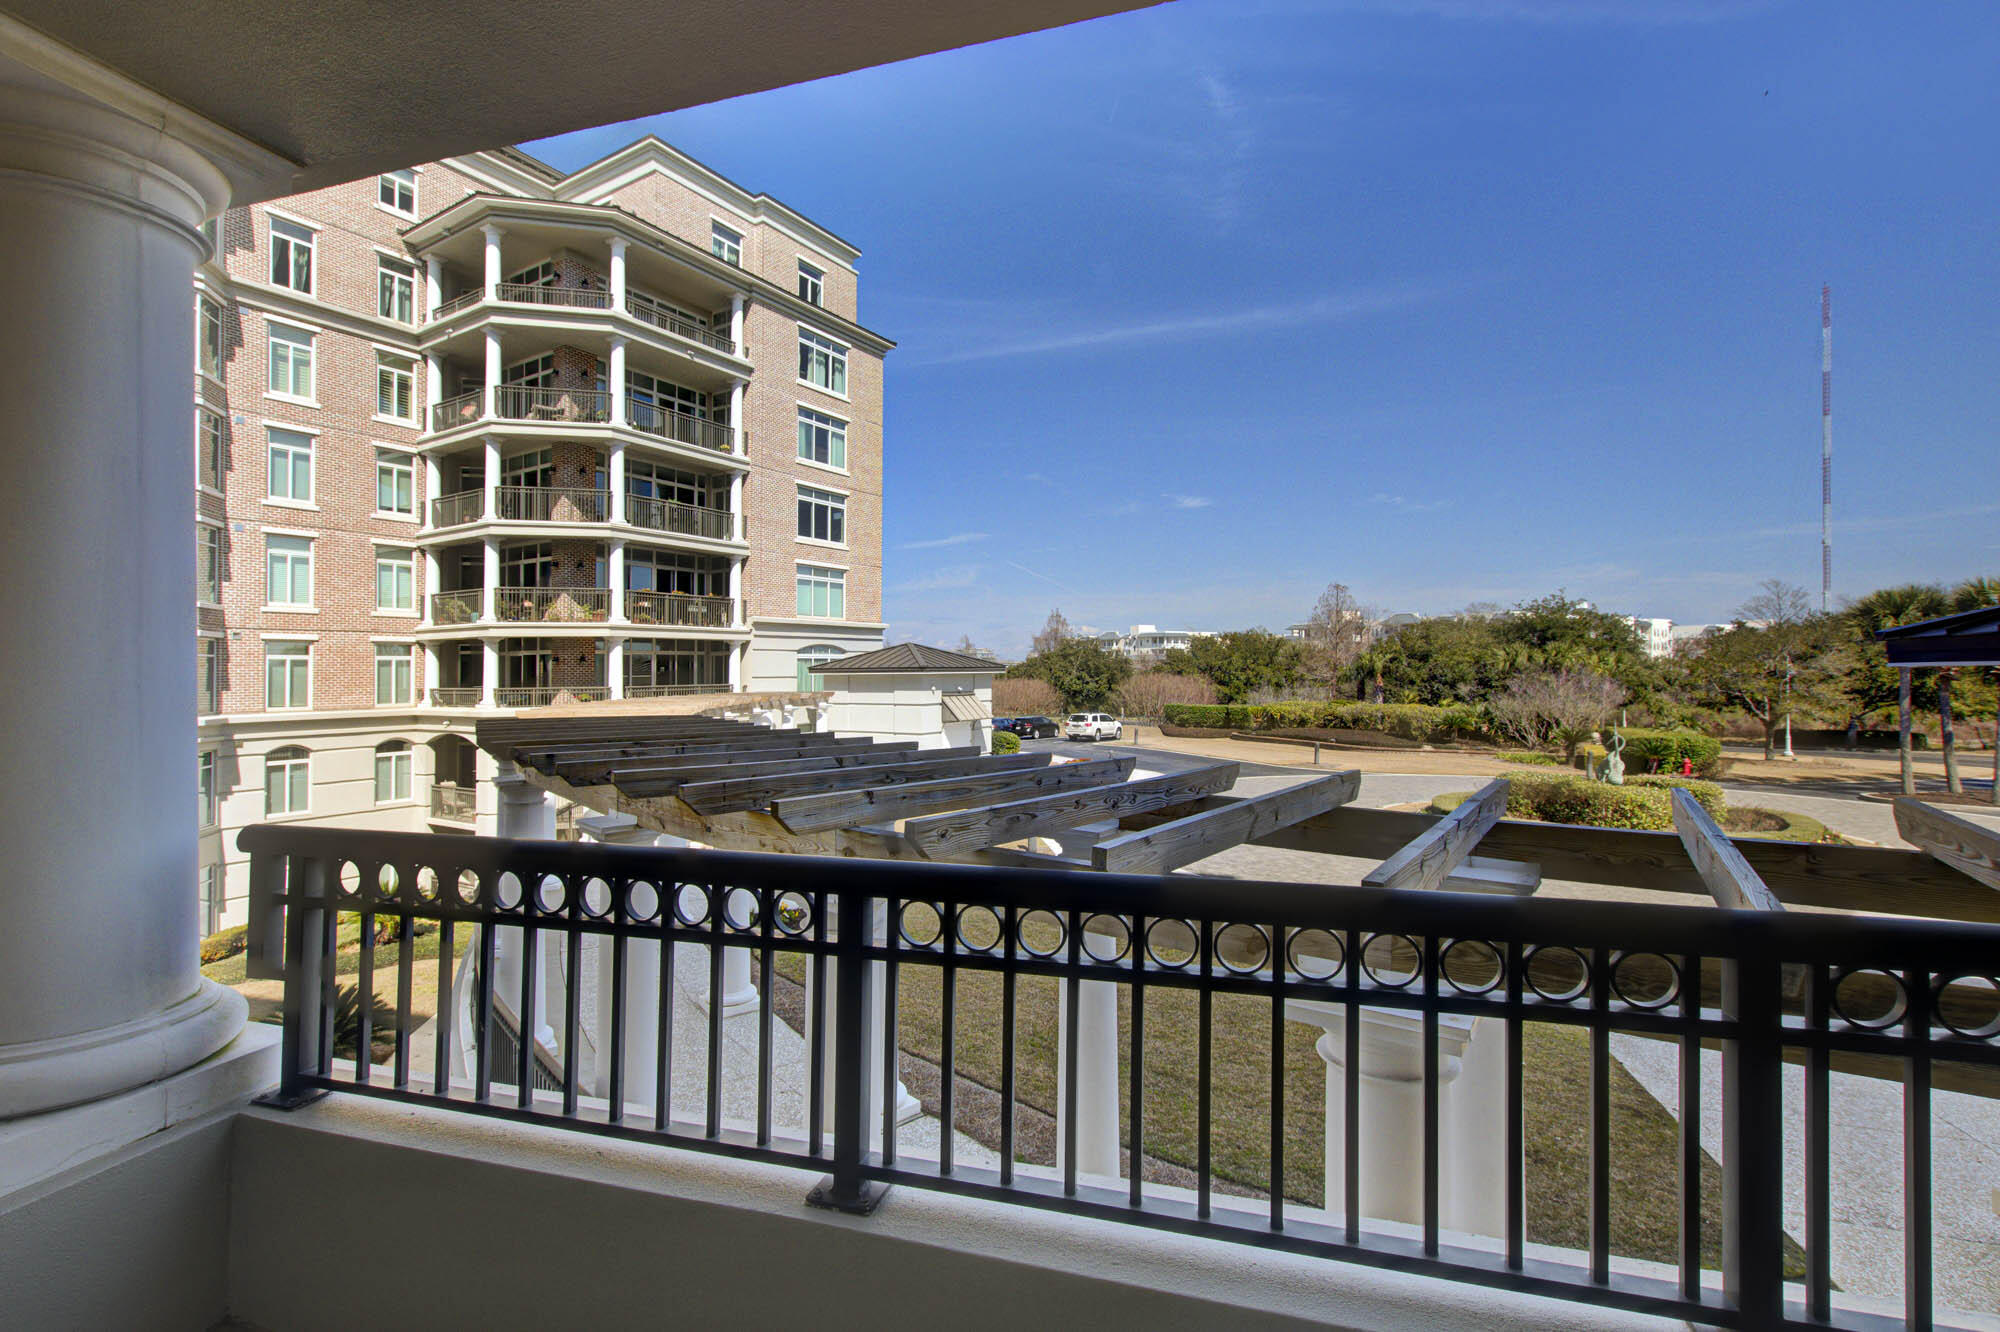 Renaissance On Chas Harbor Homes For Sale - 231 South Plaza, Mount Pleasant, SC - 9